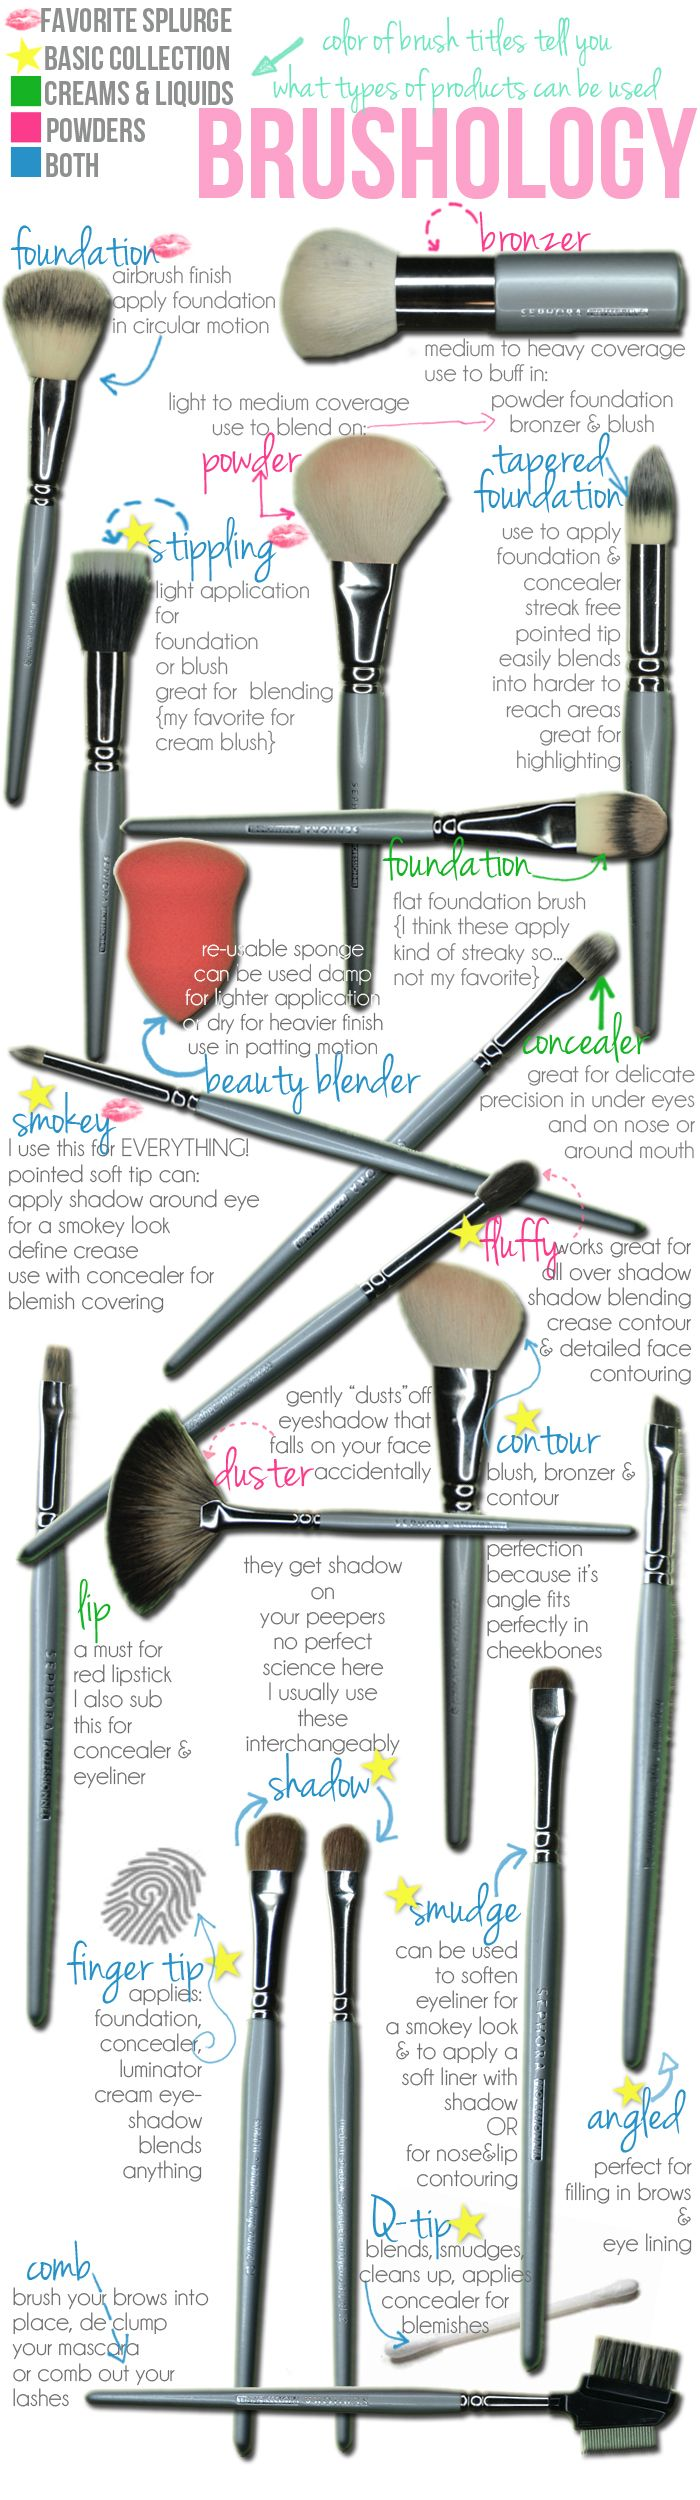 Brushes~best applicators for make-up. ELF Cosmetics have good brushes on the cheap. Buy at craft stores too!